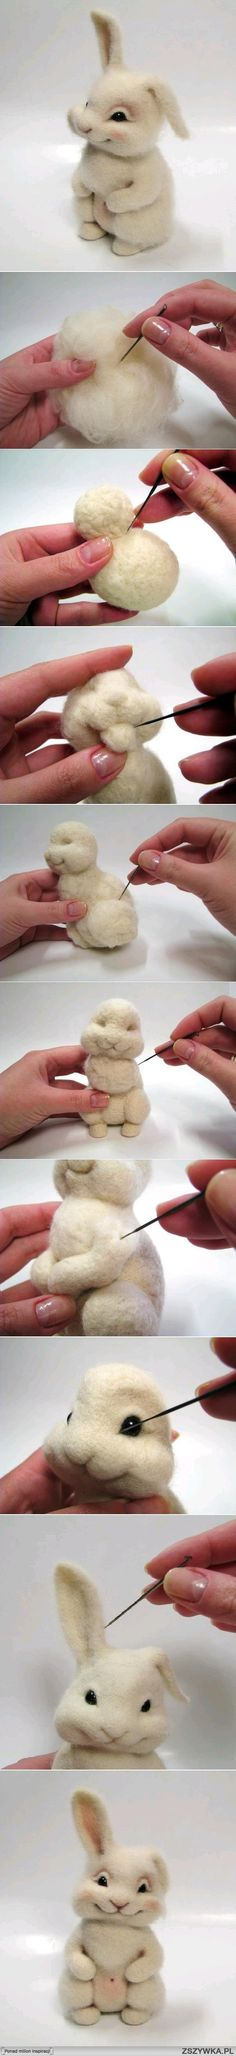 Bunny tutorial More                                                                                                                                                                                 More